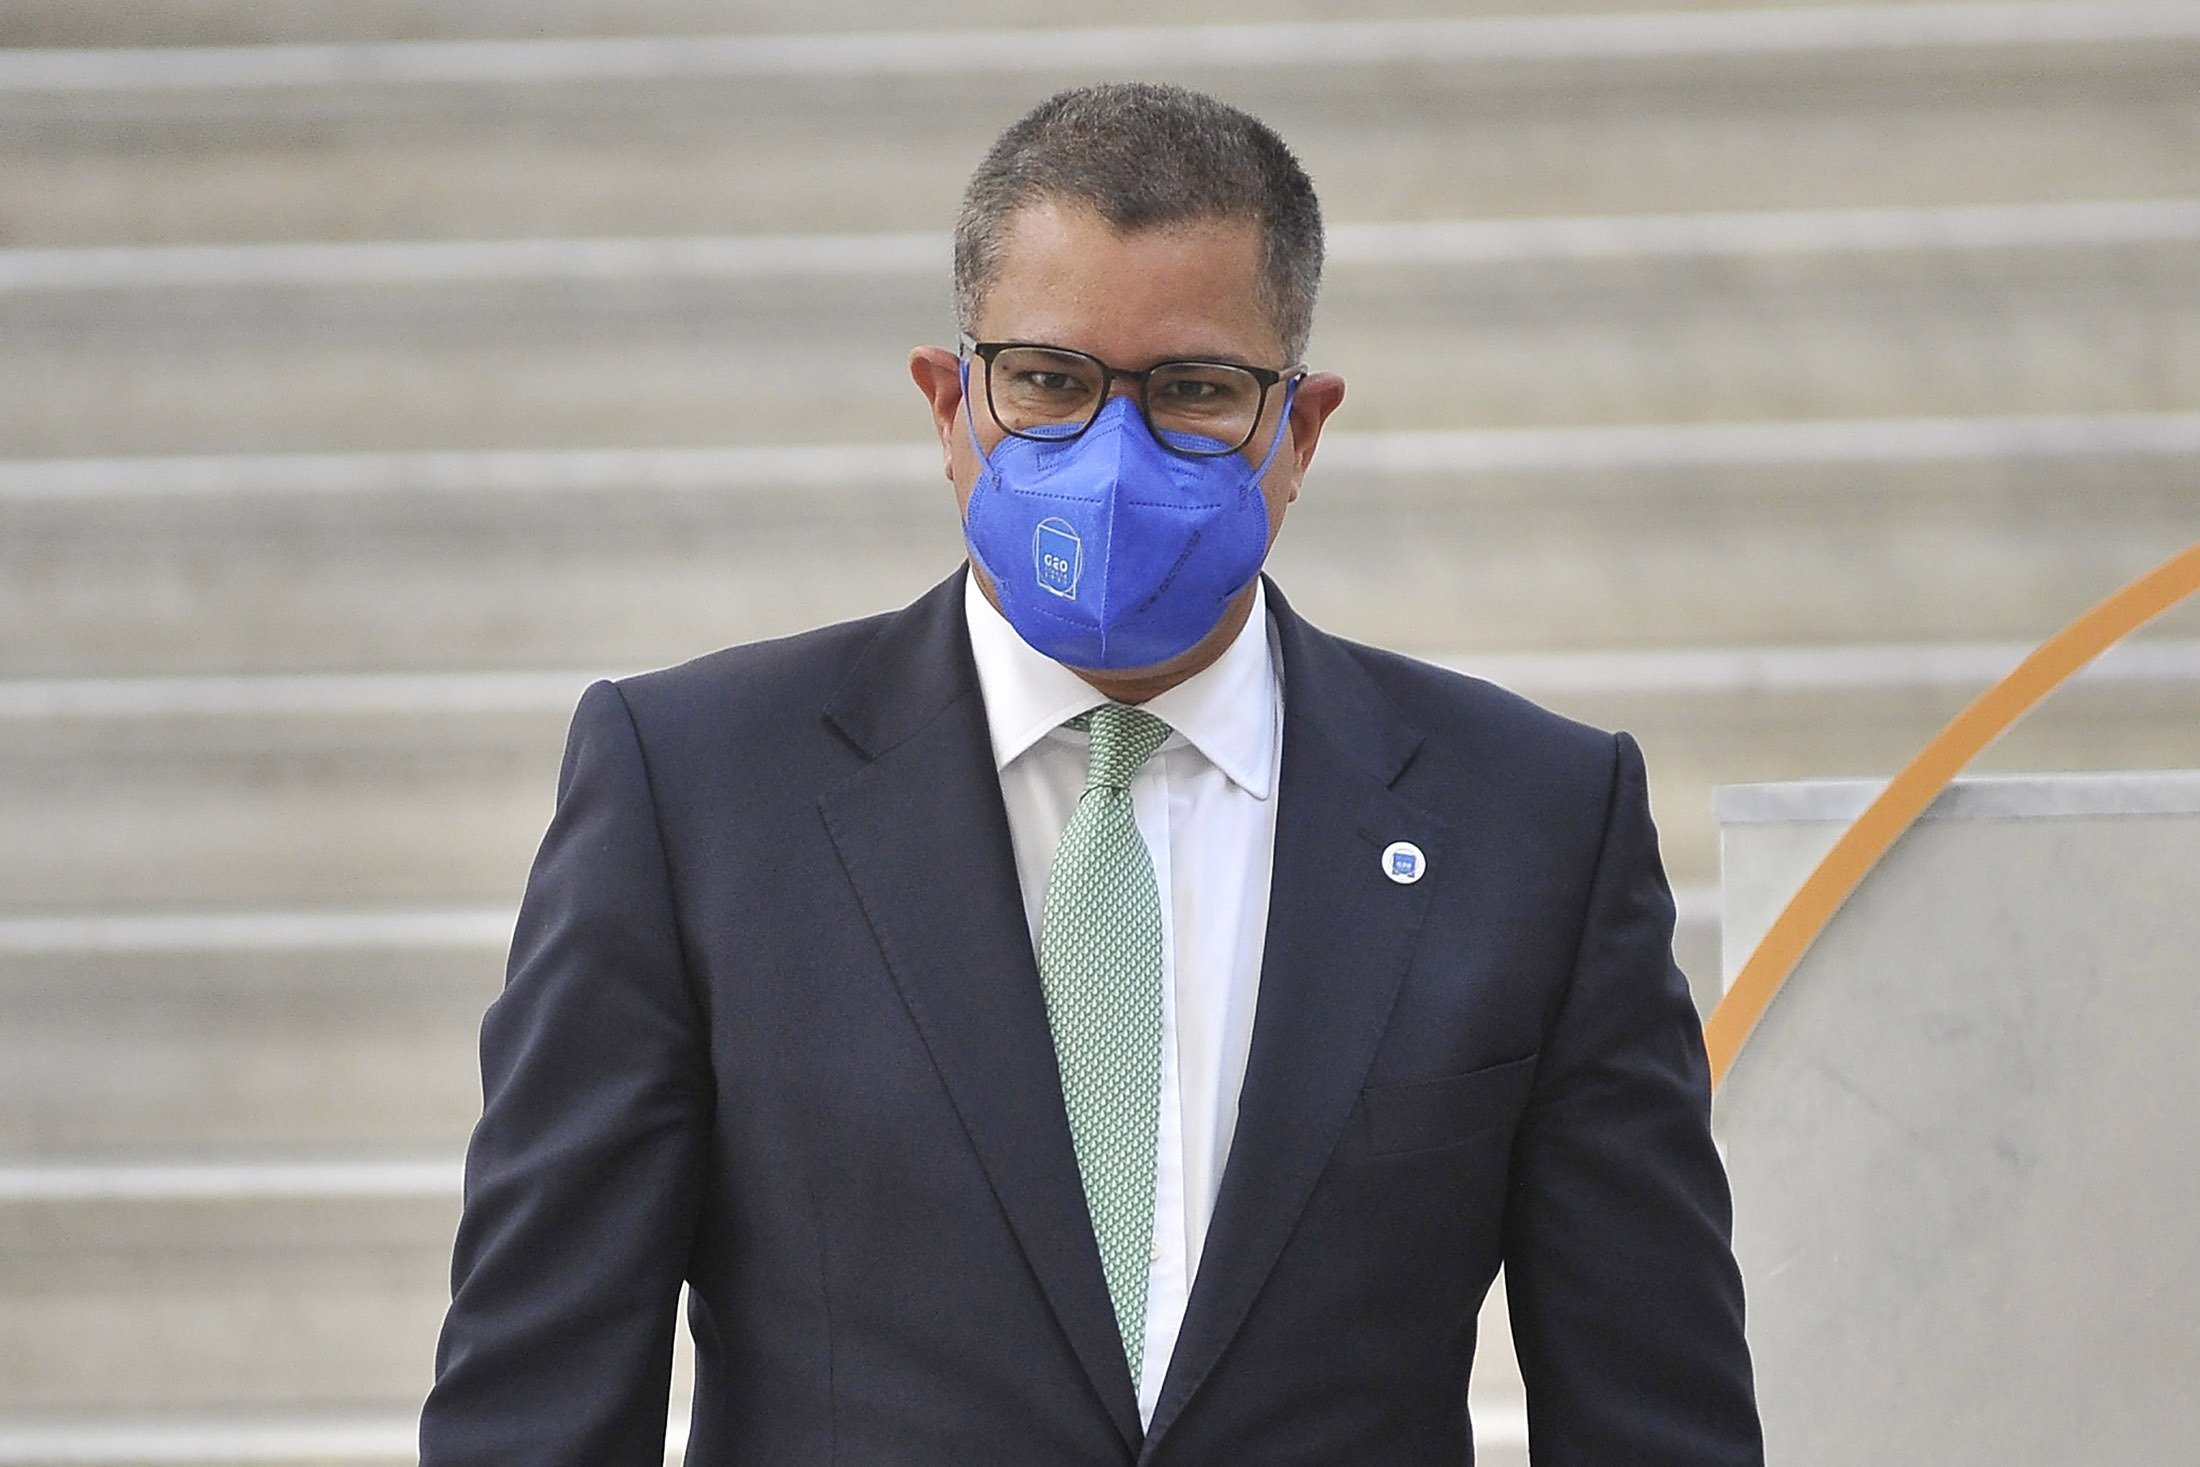 Alok Sharma, a member of the U.K. Parliament, during the meeting of the G-20 environment ministers at the city of Naples, Italy, July 23, 2021. (Getty Images Photo)